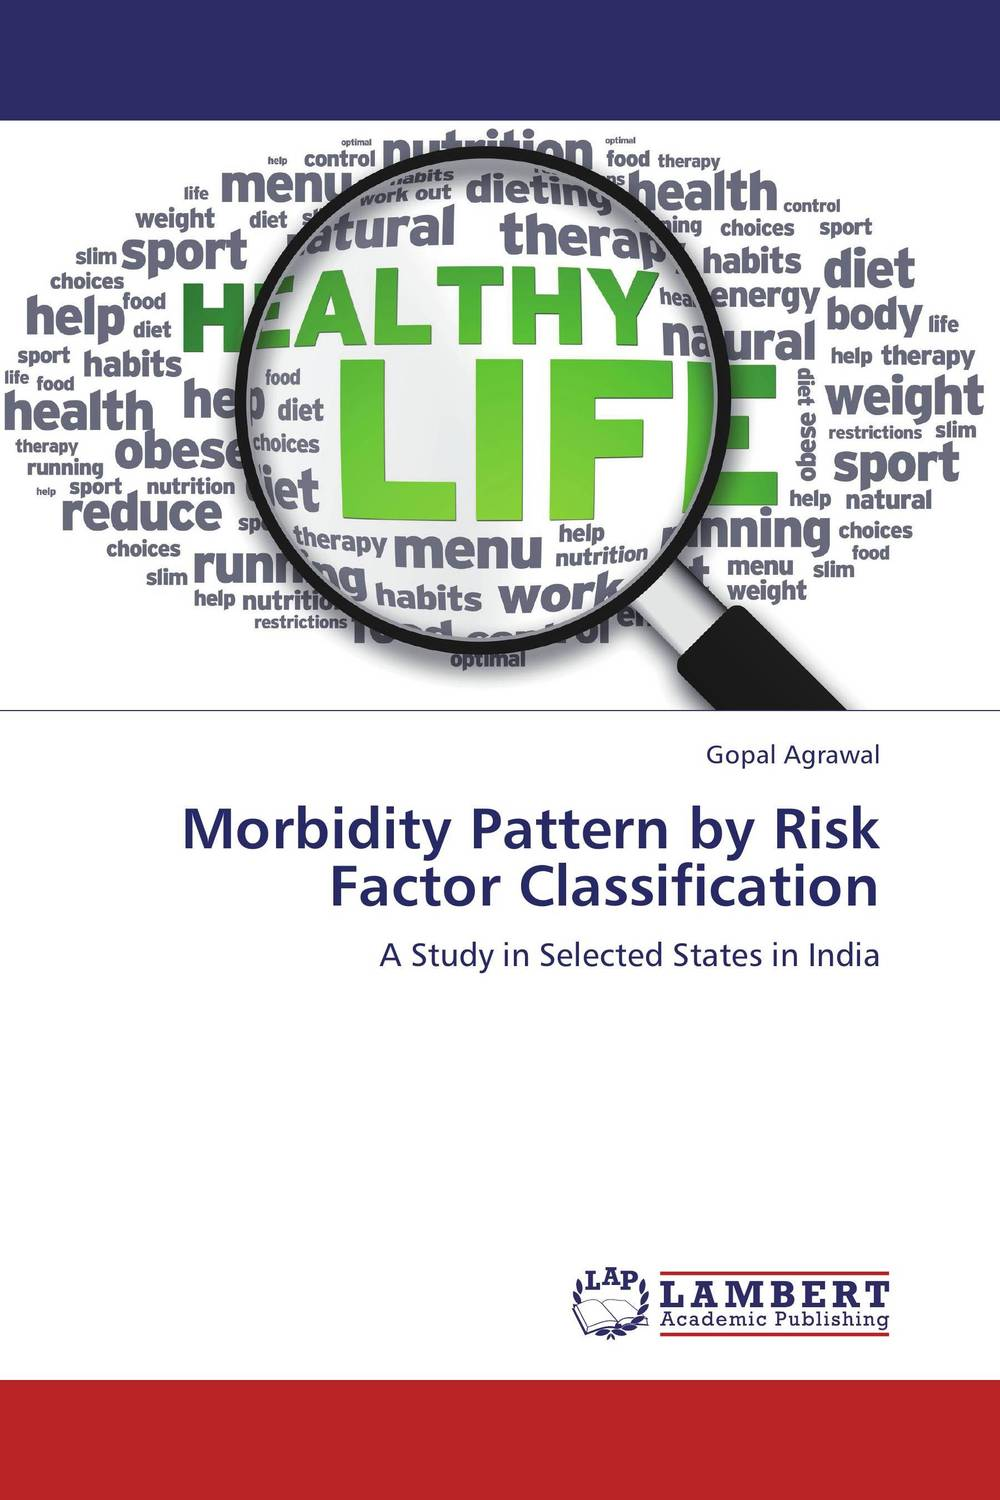 Morbidity Pattern by Risk Factor Classification evaluation of non communicable diseases control strategies